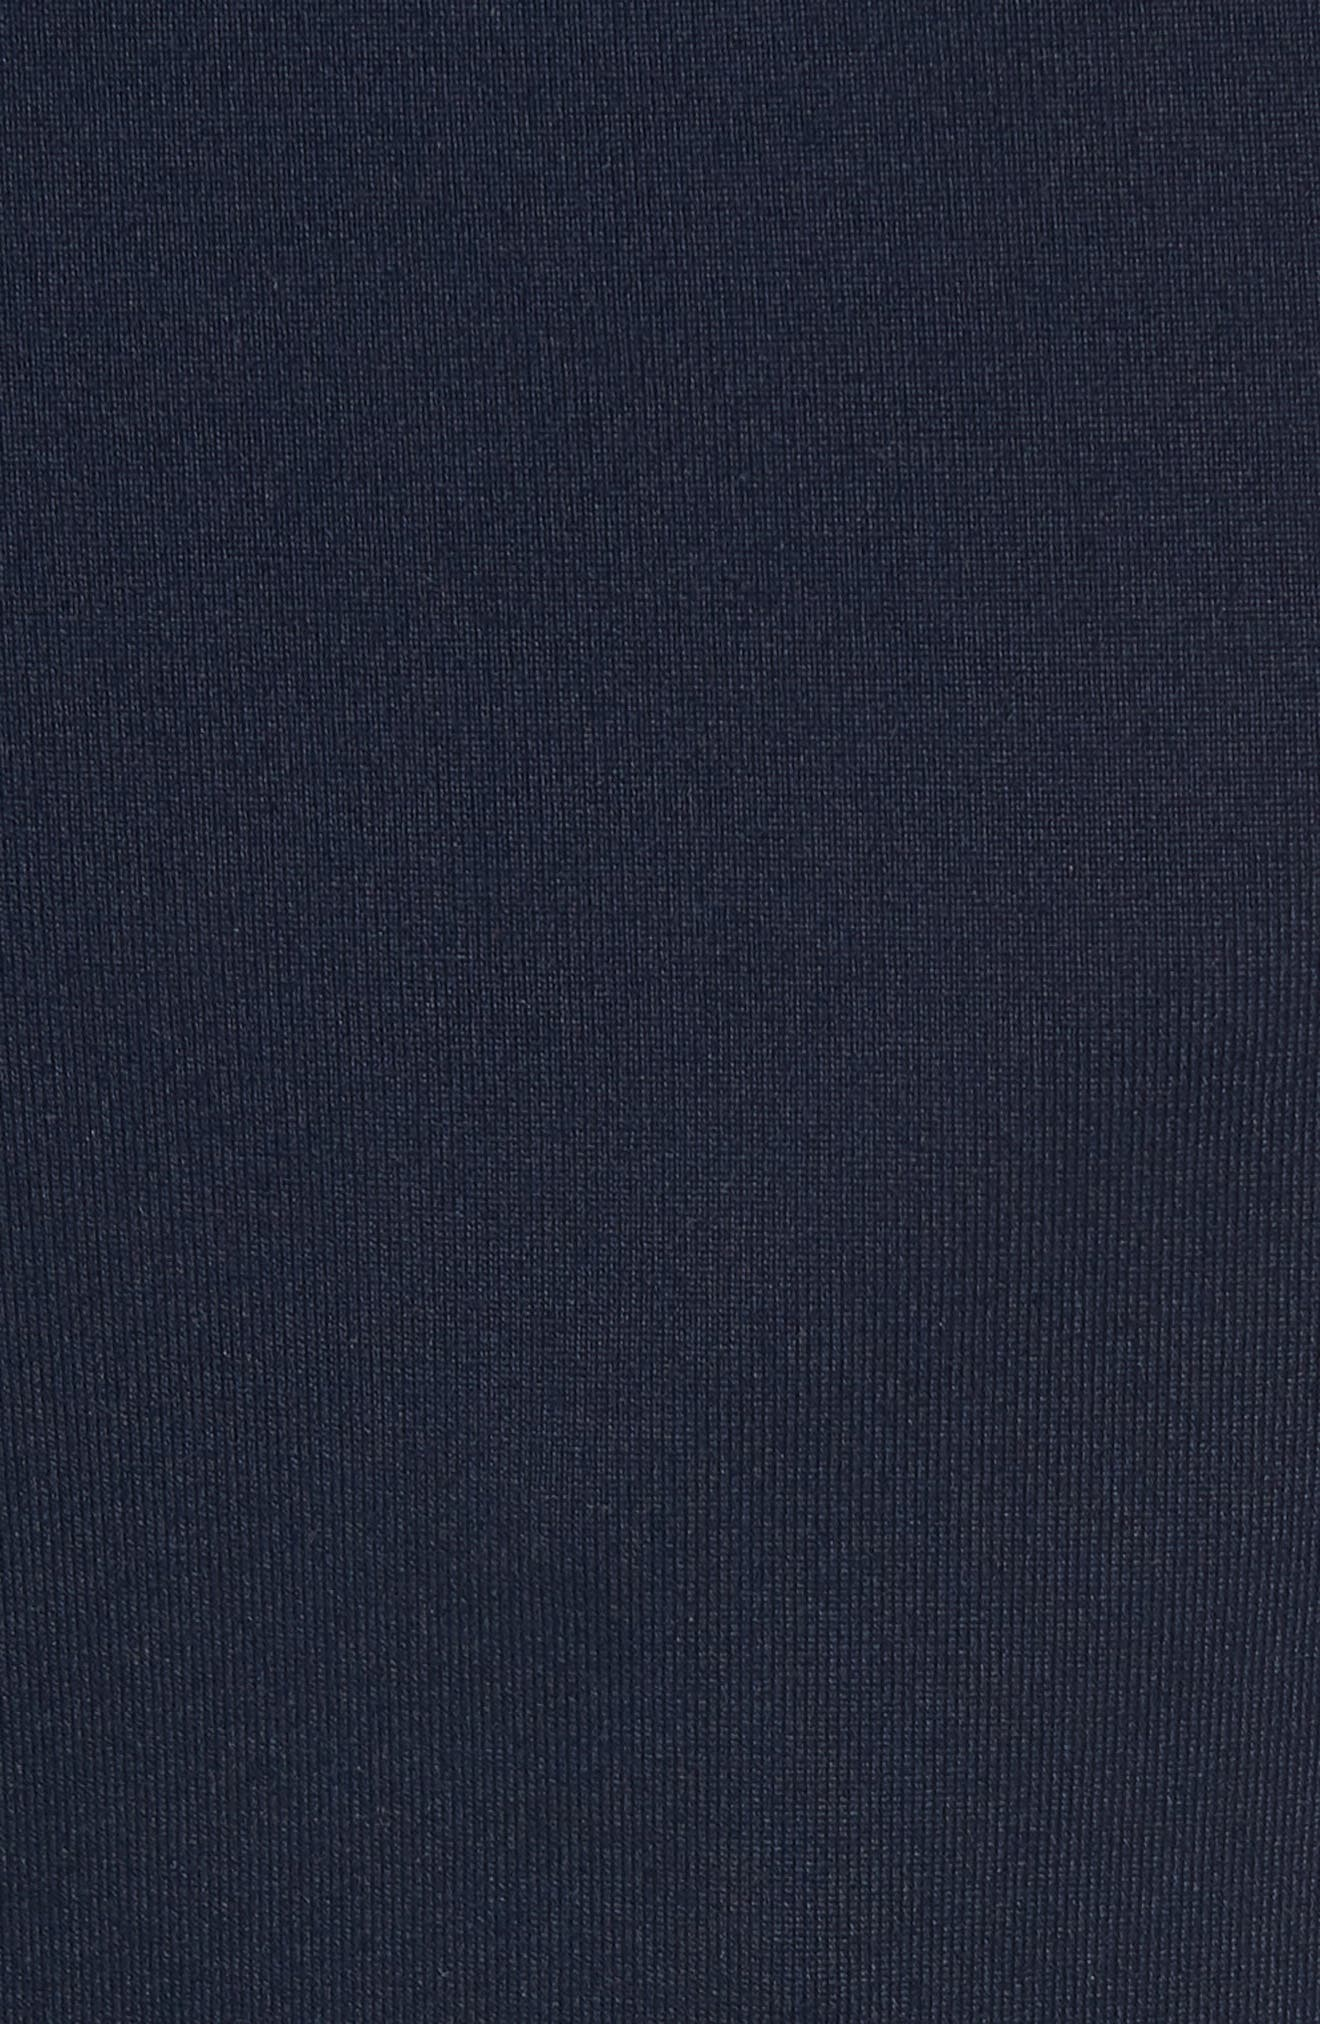 206 Pants,                             Alternate thumbnail 5, color,                             NAVY